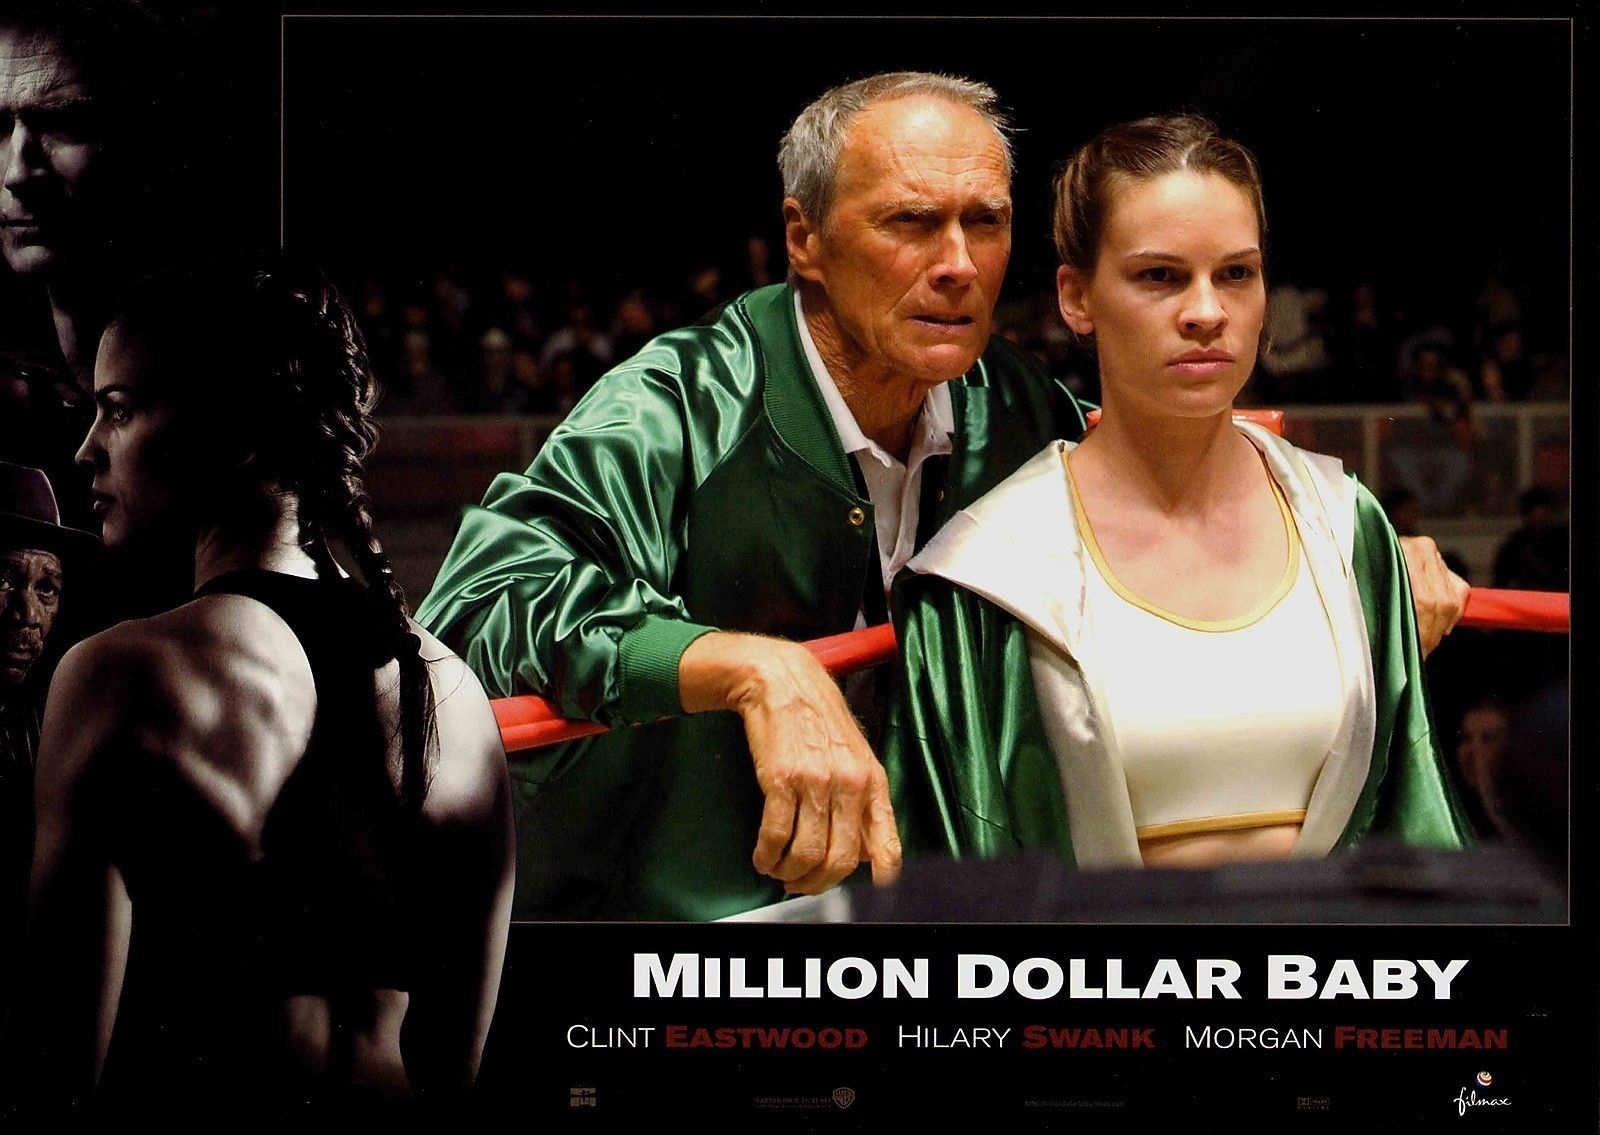 million dollar baby by clint eastwood Find great deals on ebay for million dollar baby signed and stallone signed clint eastwood million dollar baby autographed boxing glove coa $25499.